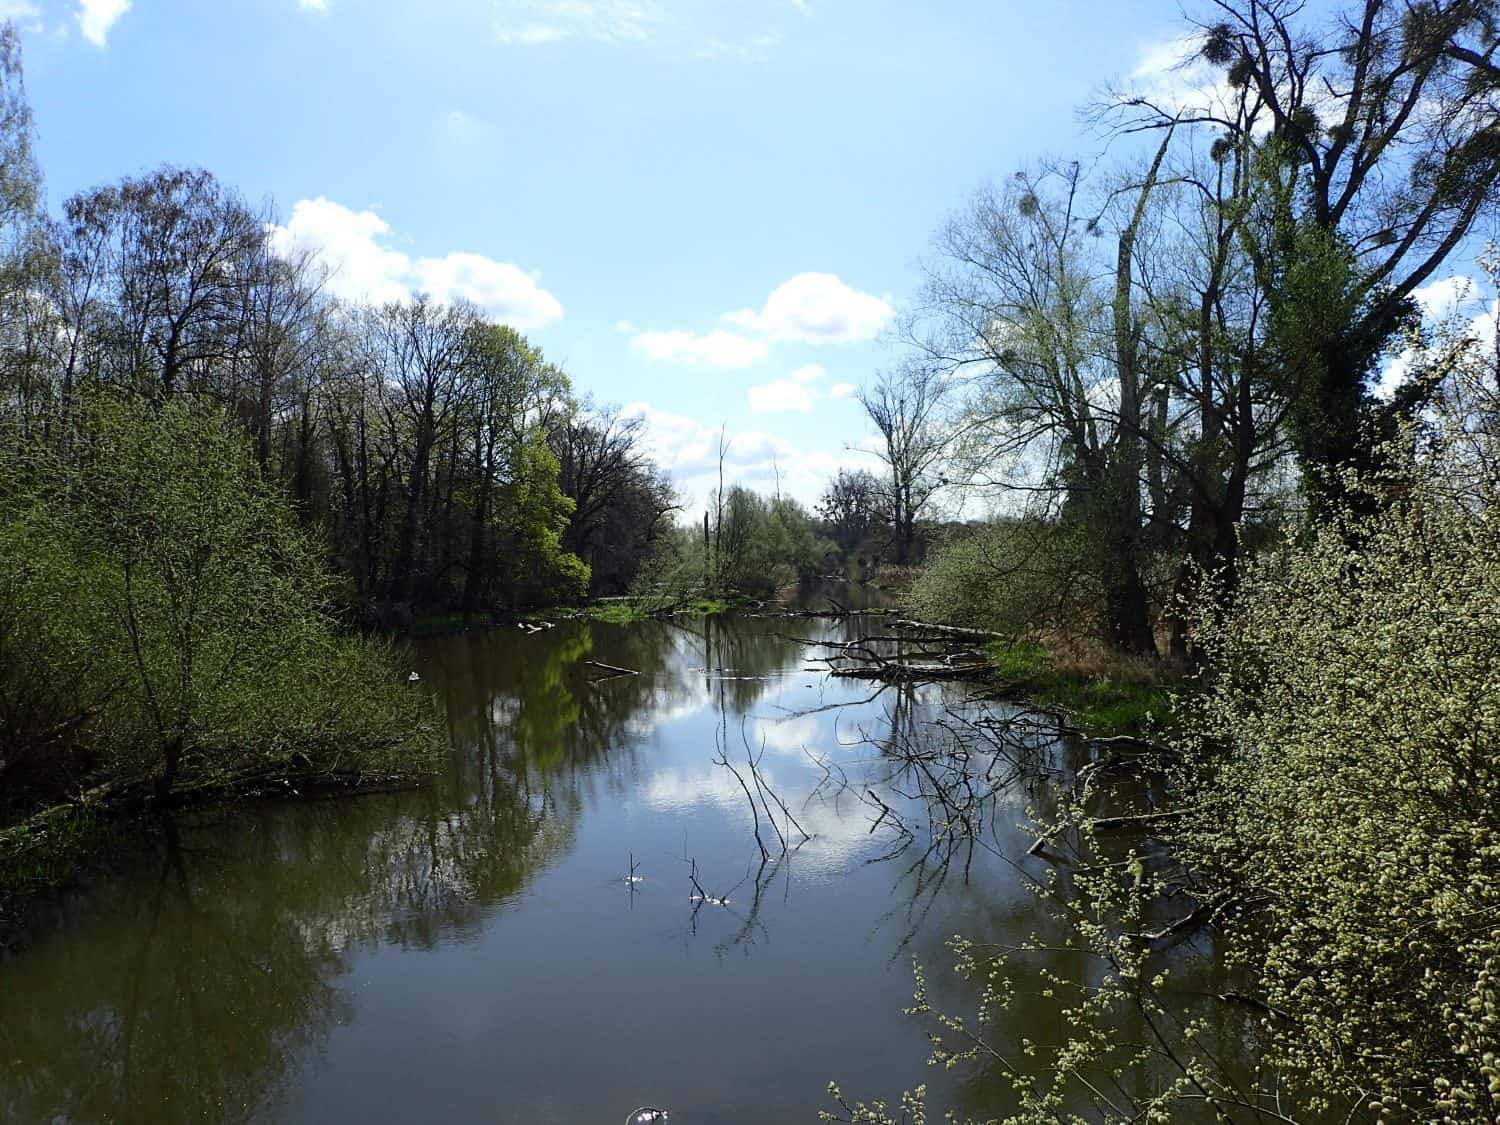 Hiking the Treidlerweg along old arms of the rhine river